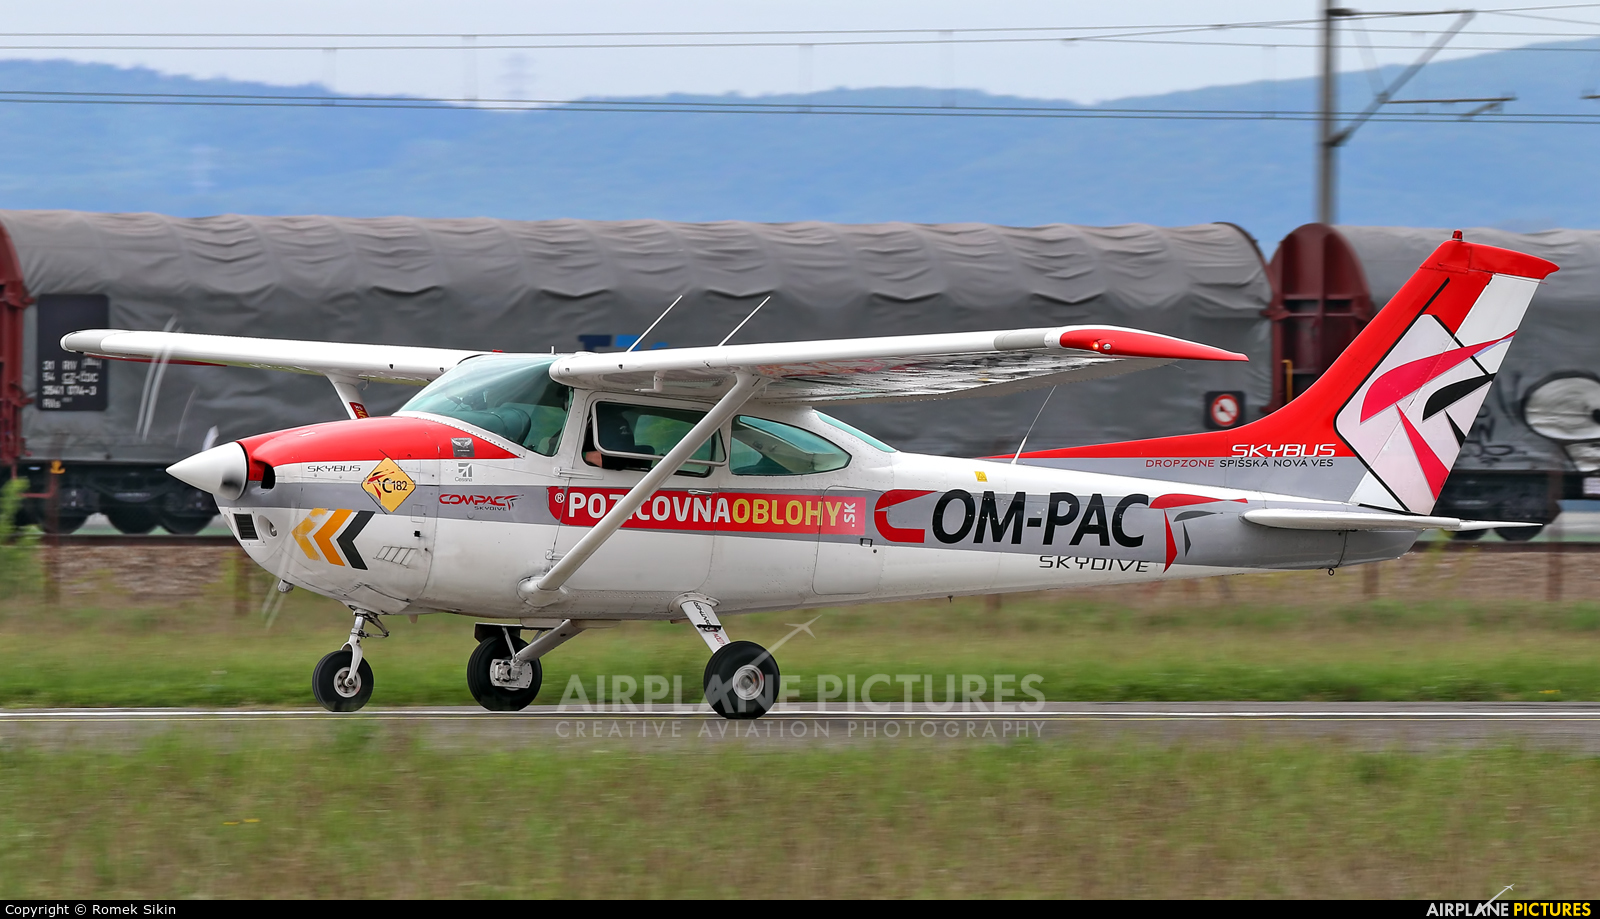 Compact OM-PAC aircraft at Piestany